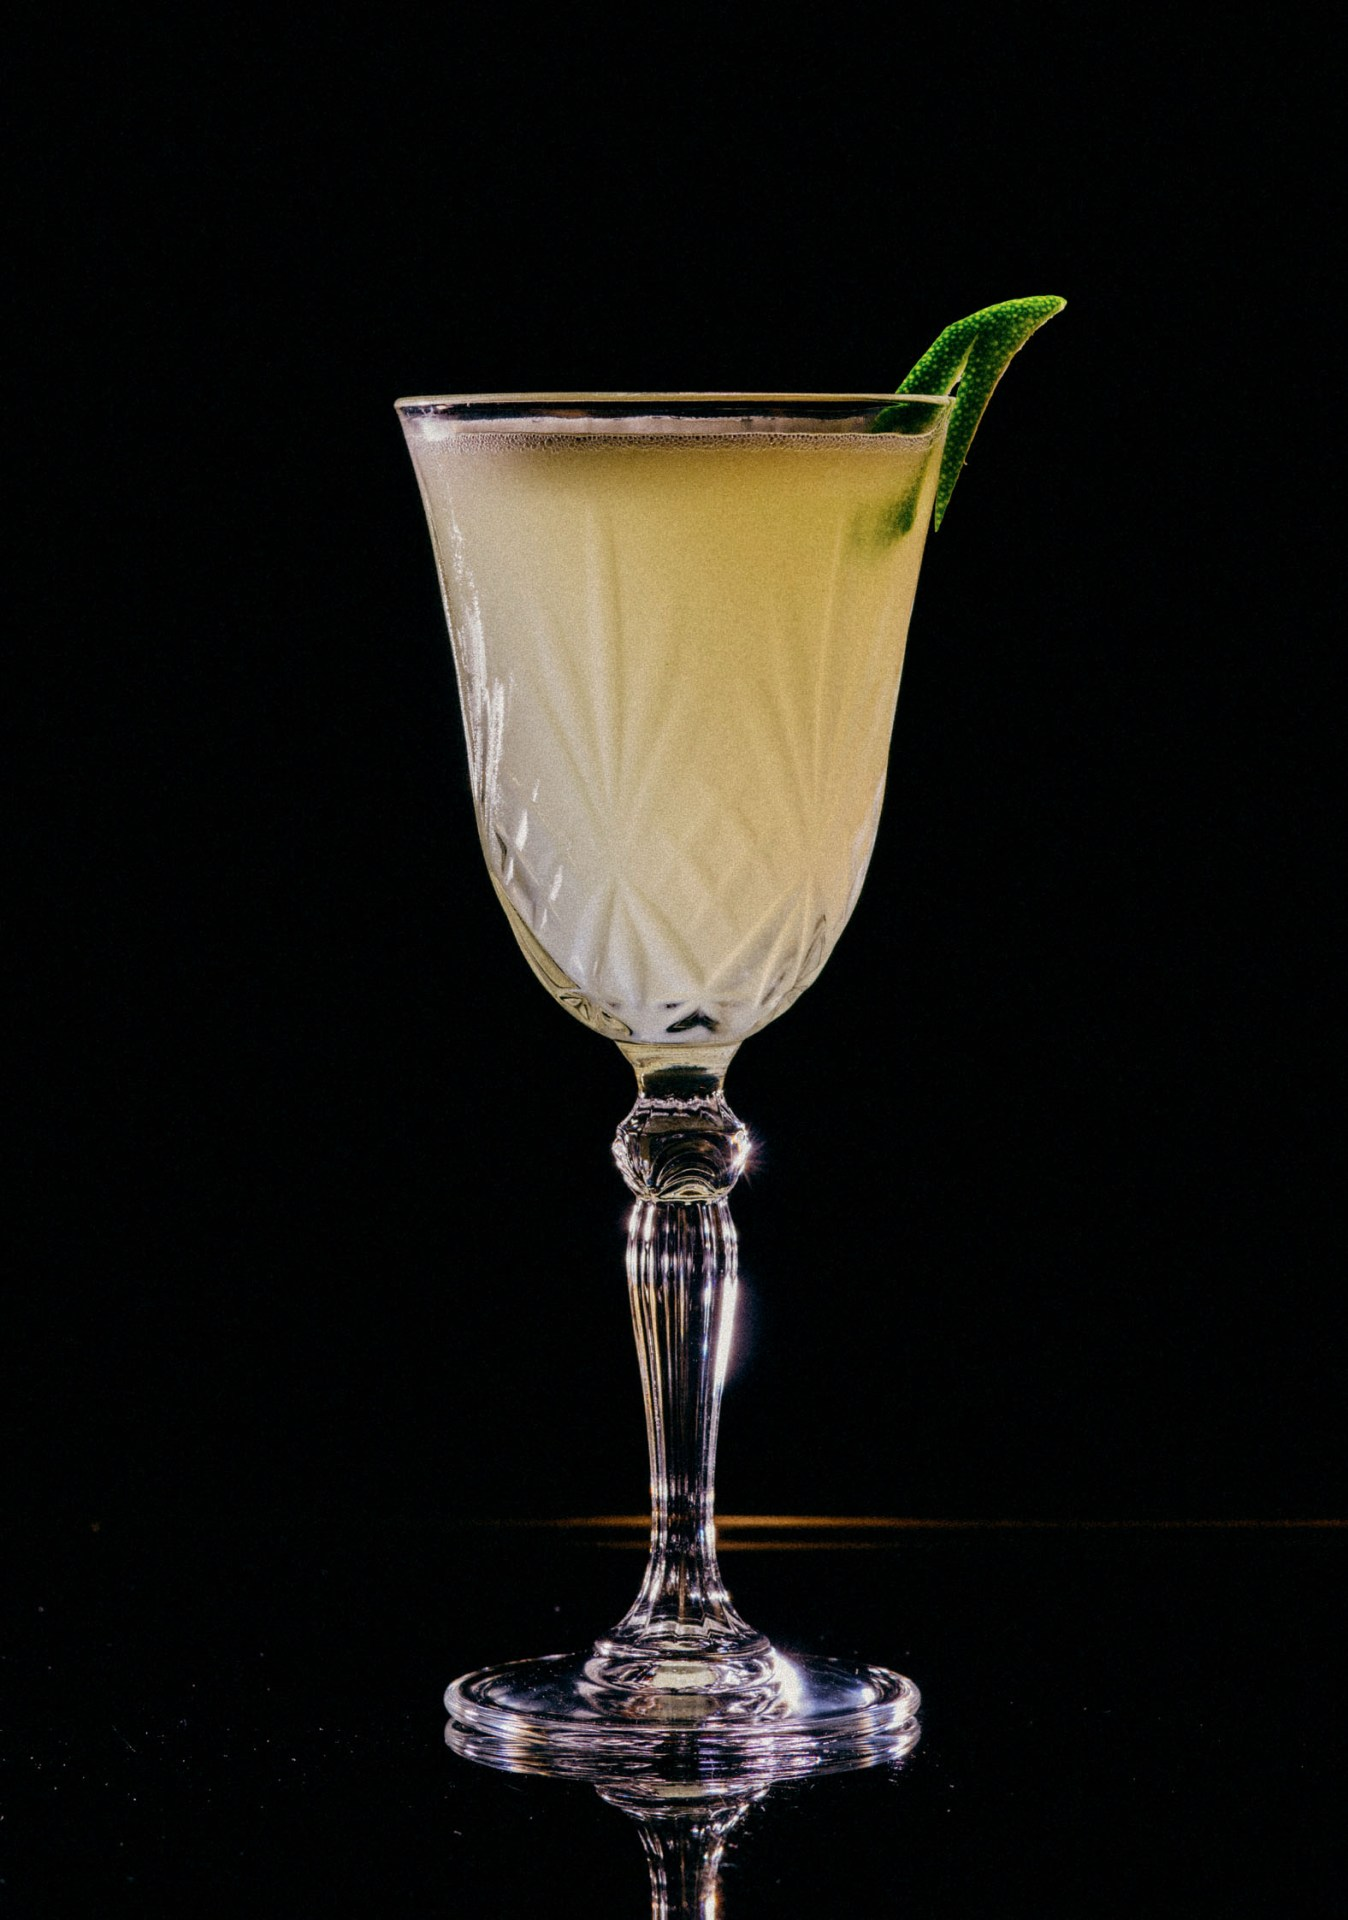 Recipe: 2cl Plymouth Gin 2cl Chatreuse 2cl Luxardo Maraschino 2cl Lime Juice